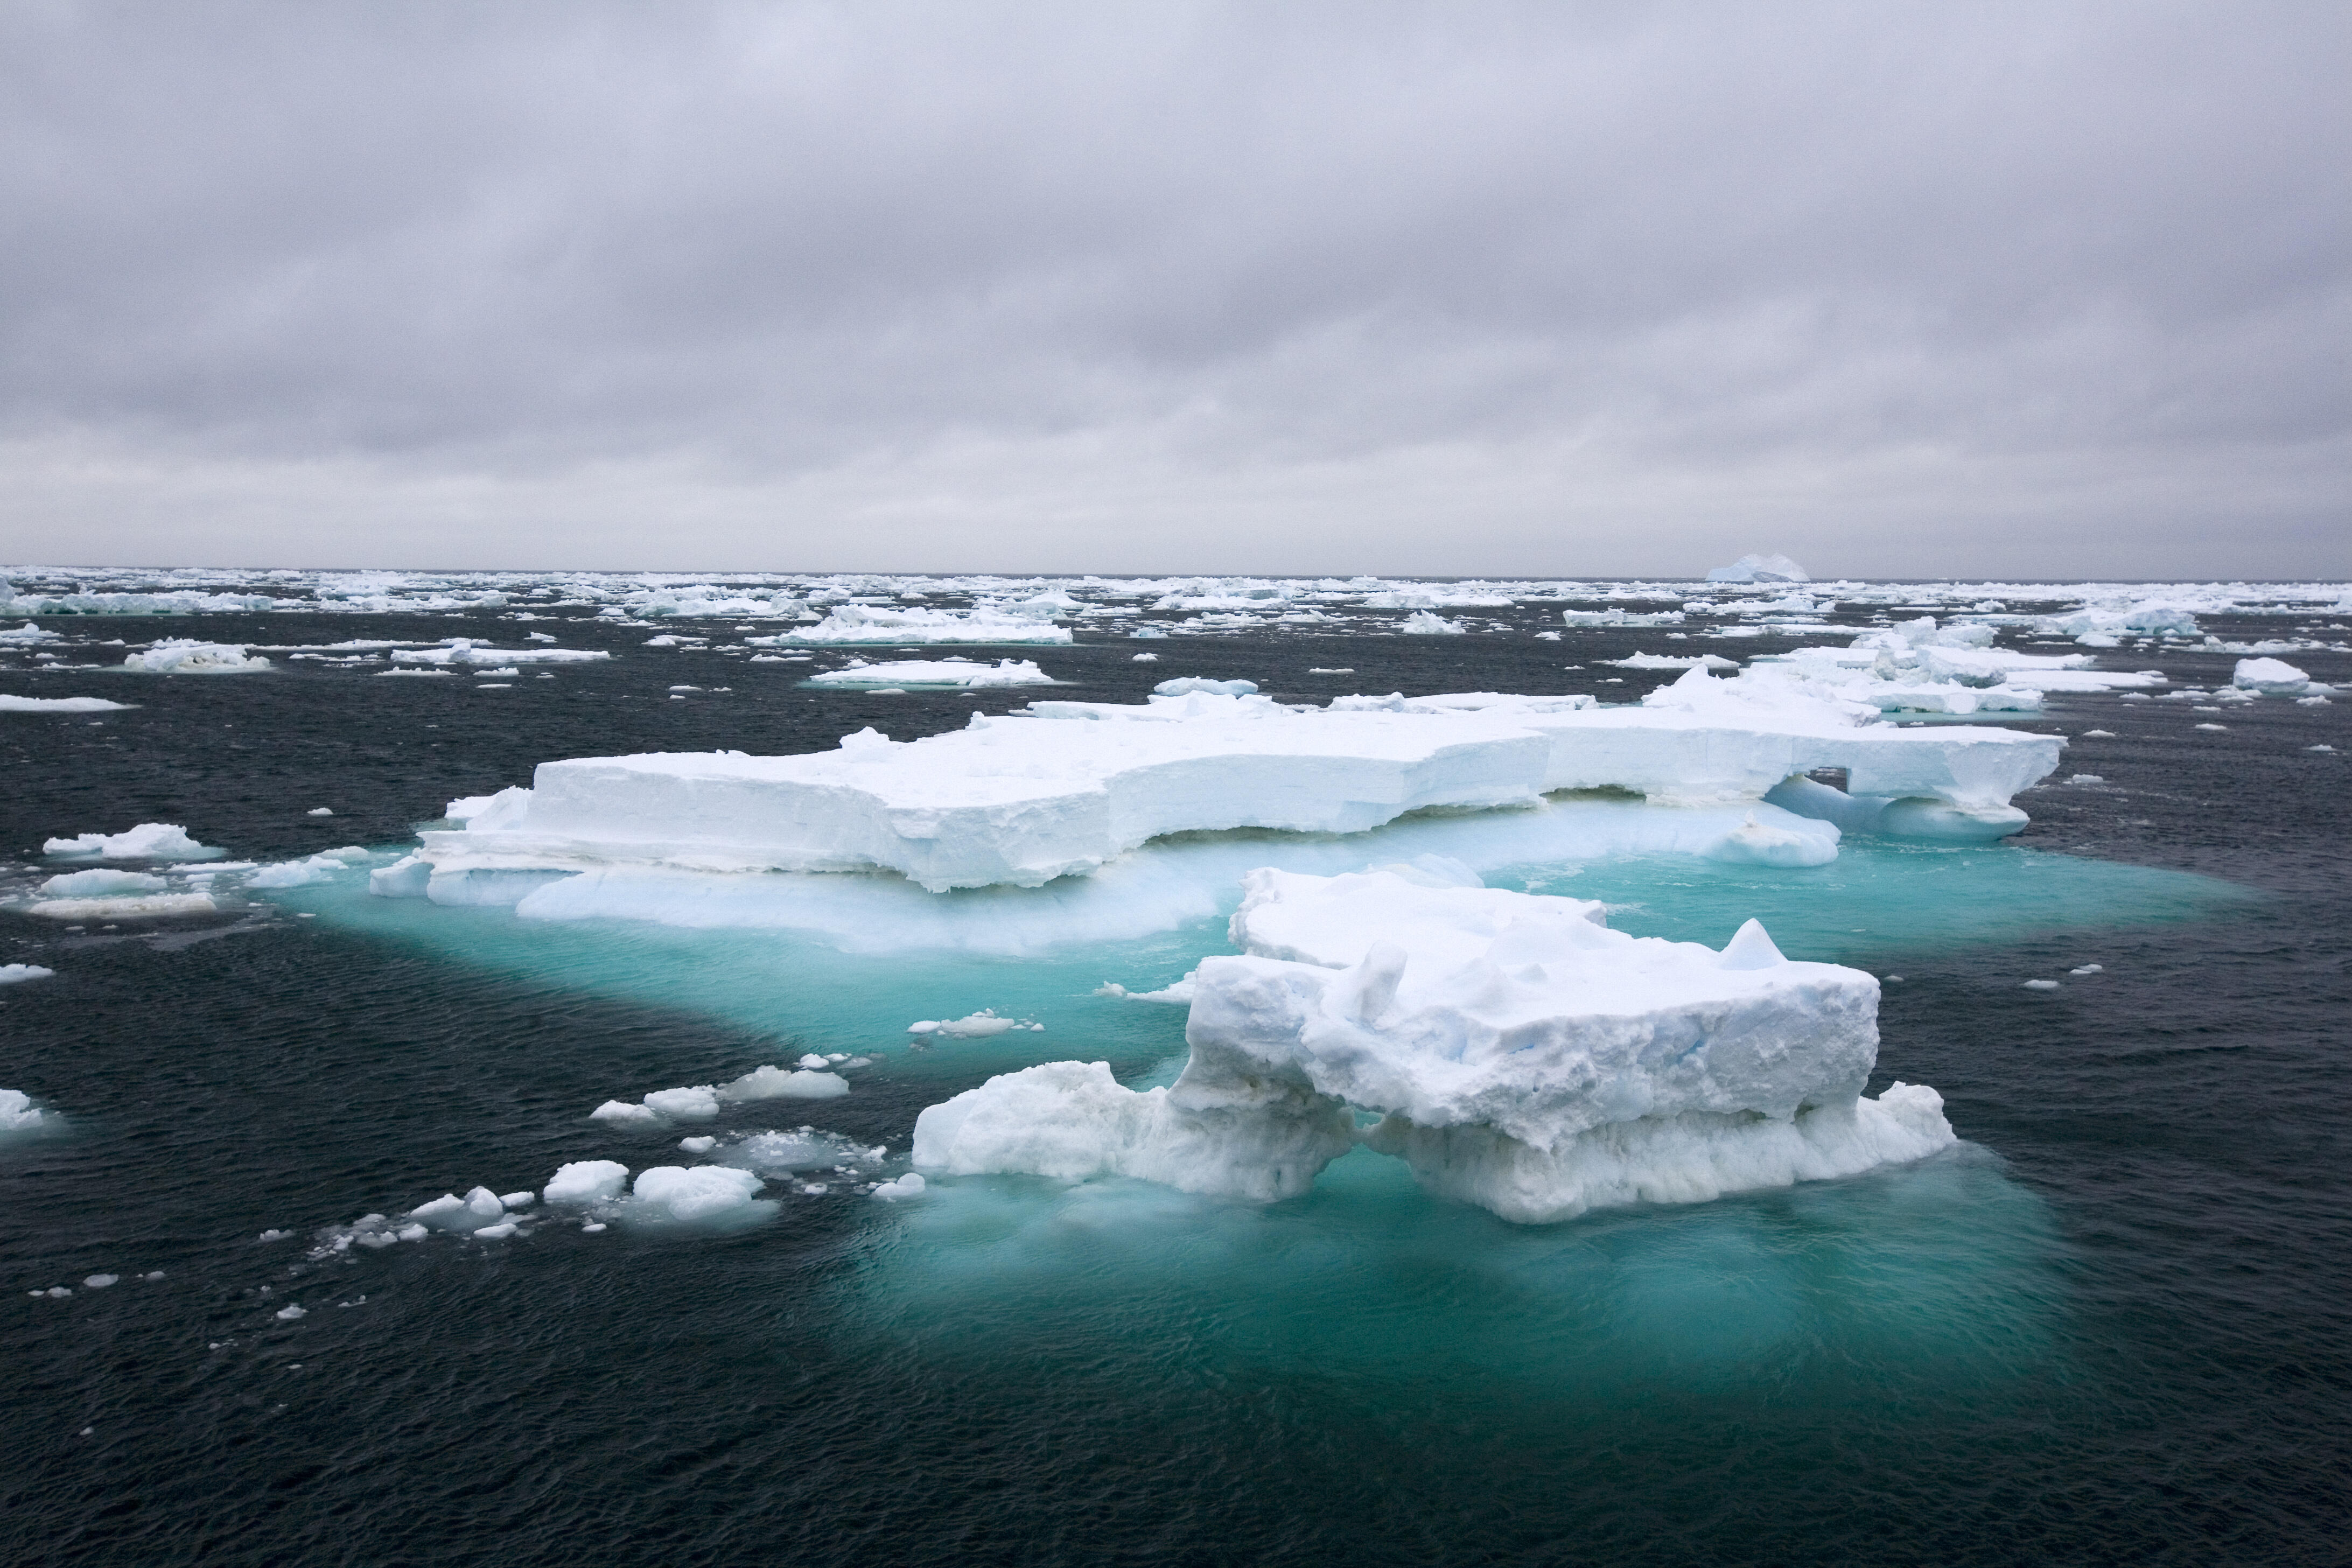 Ice in the Southern Ocean